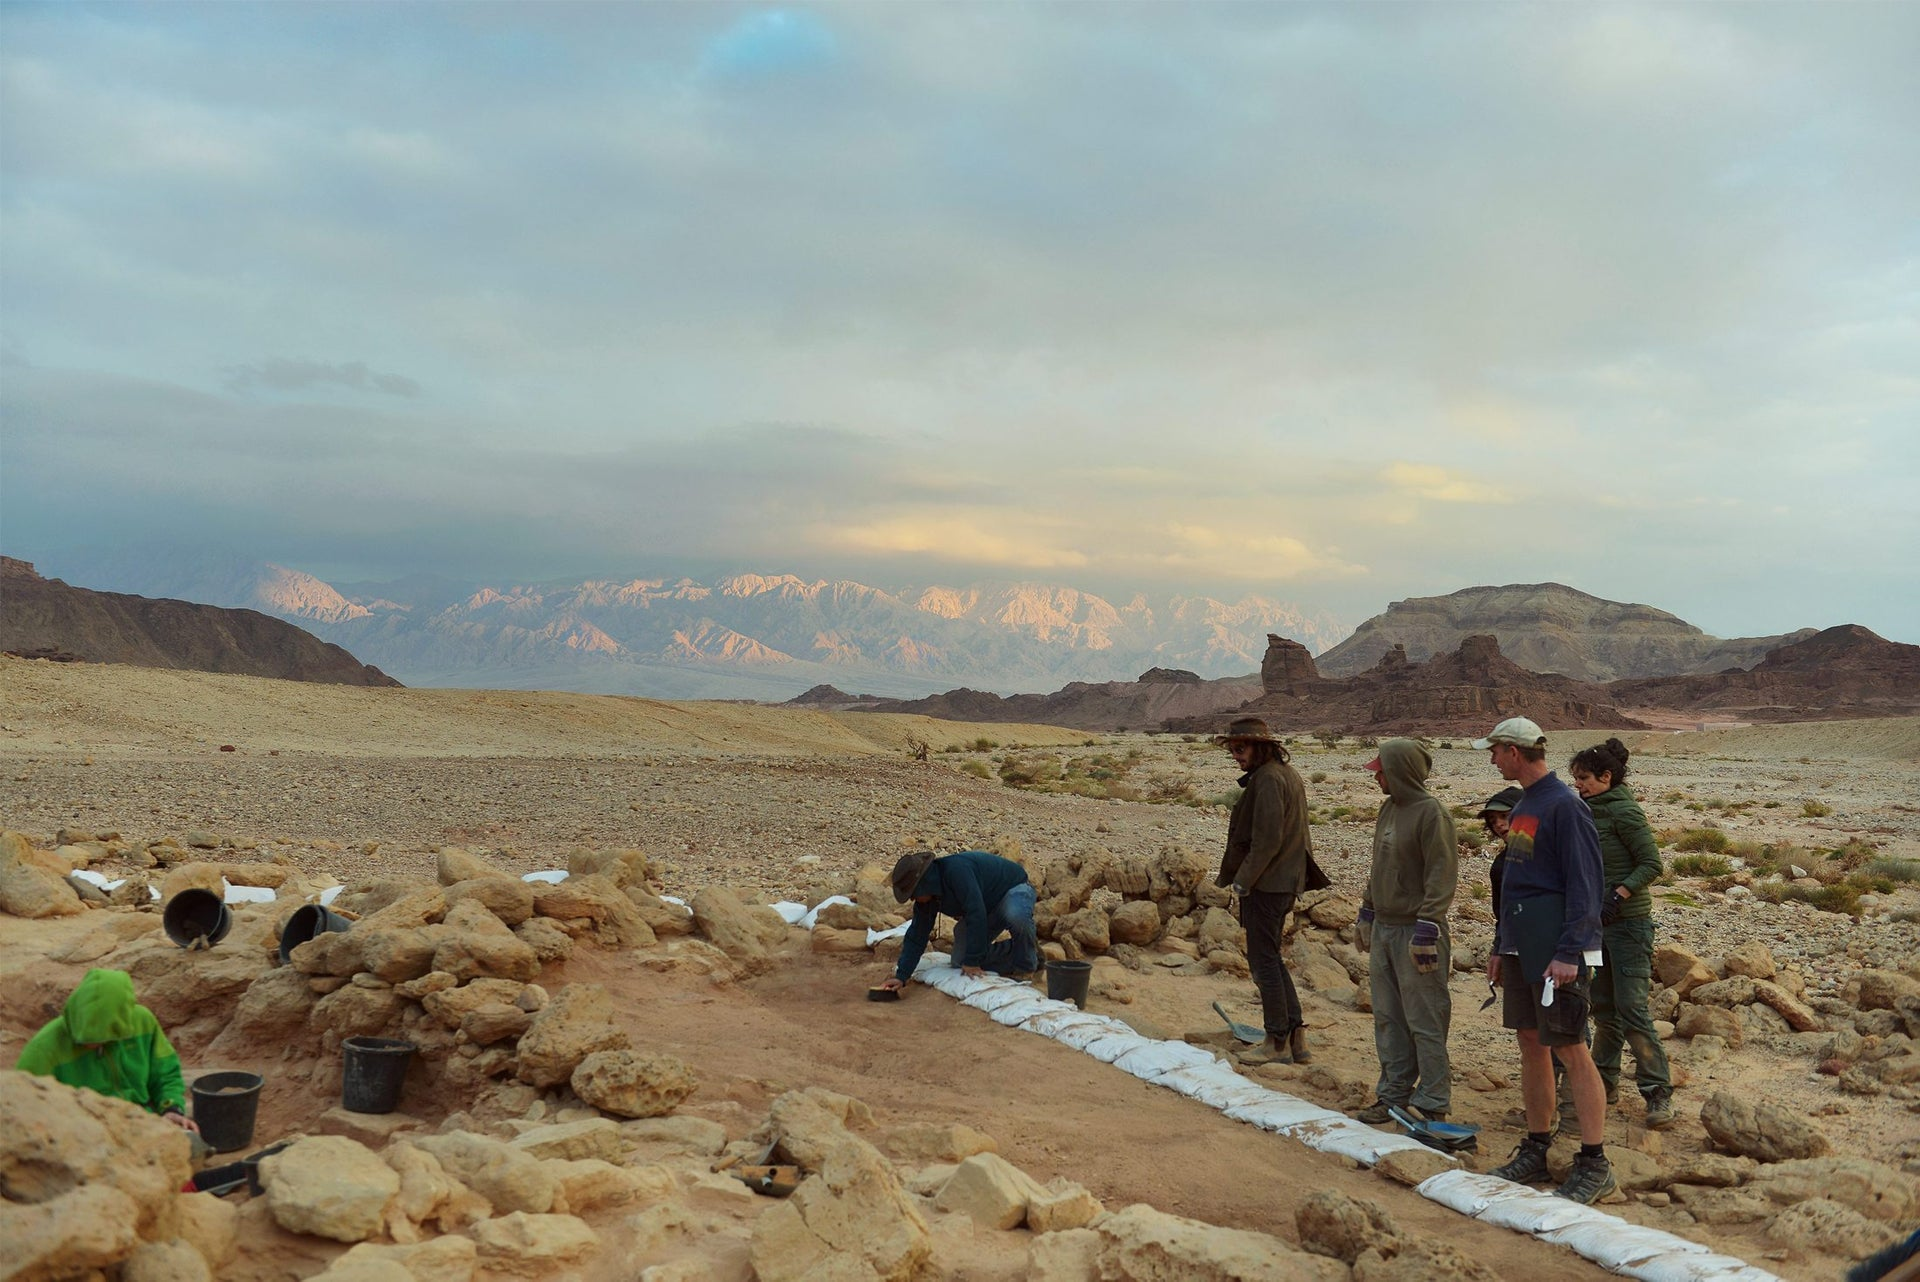 The Timna excavations site.